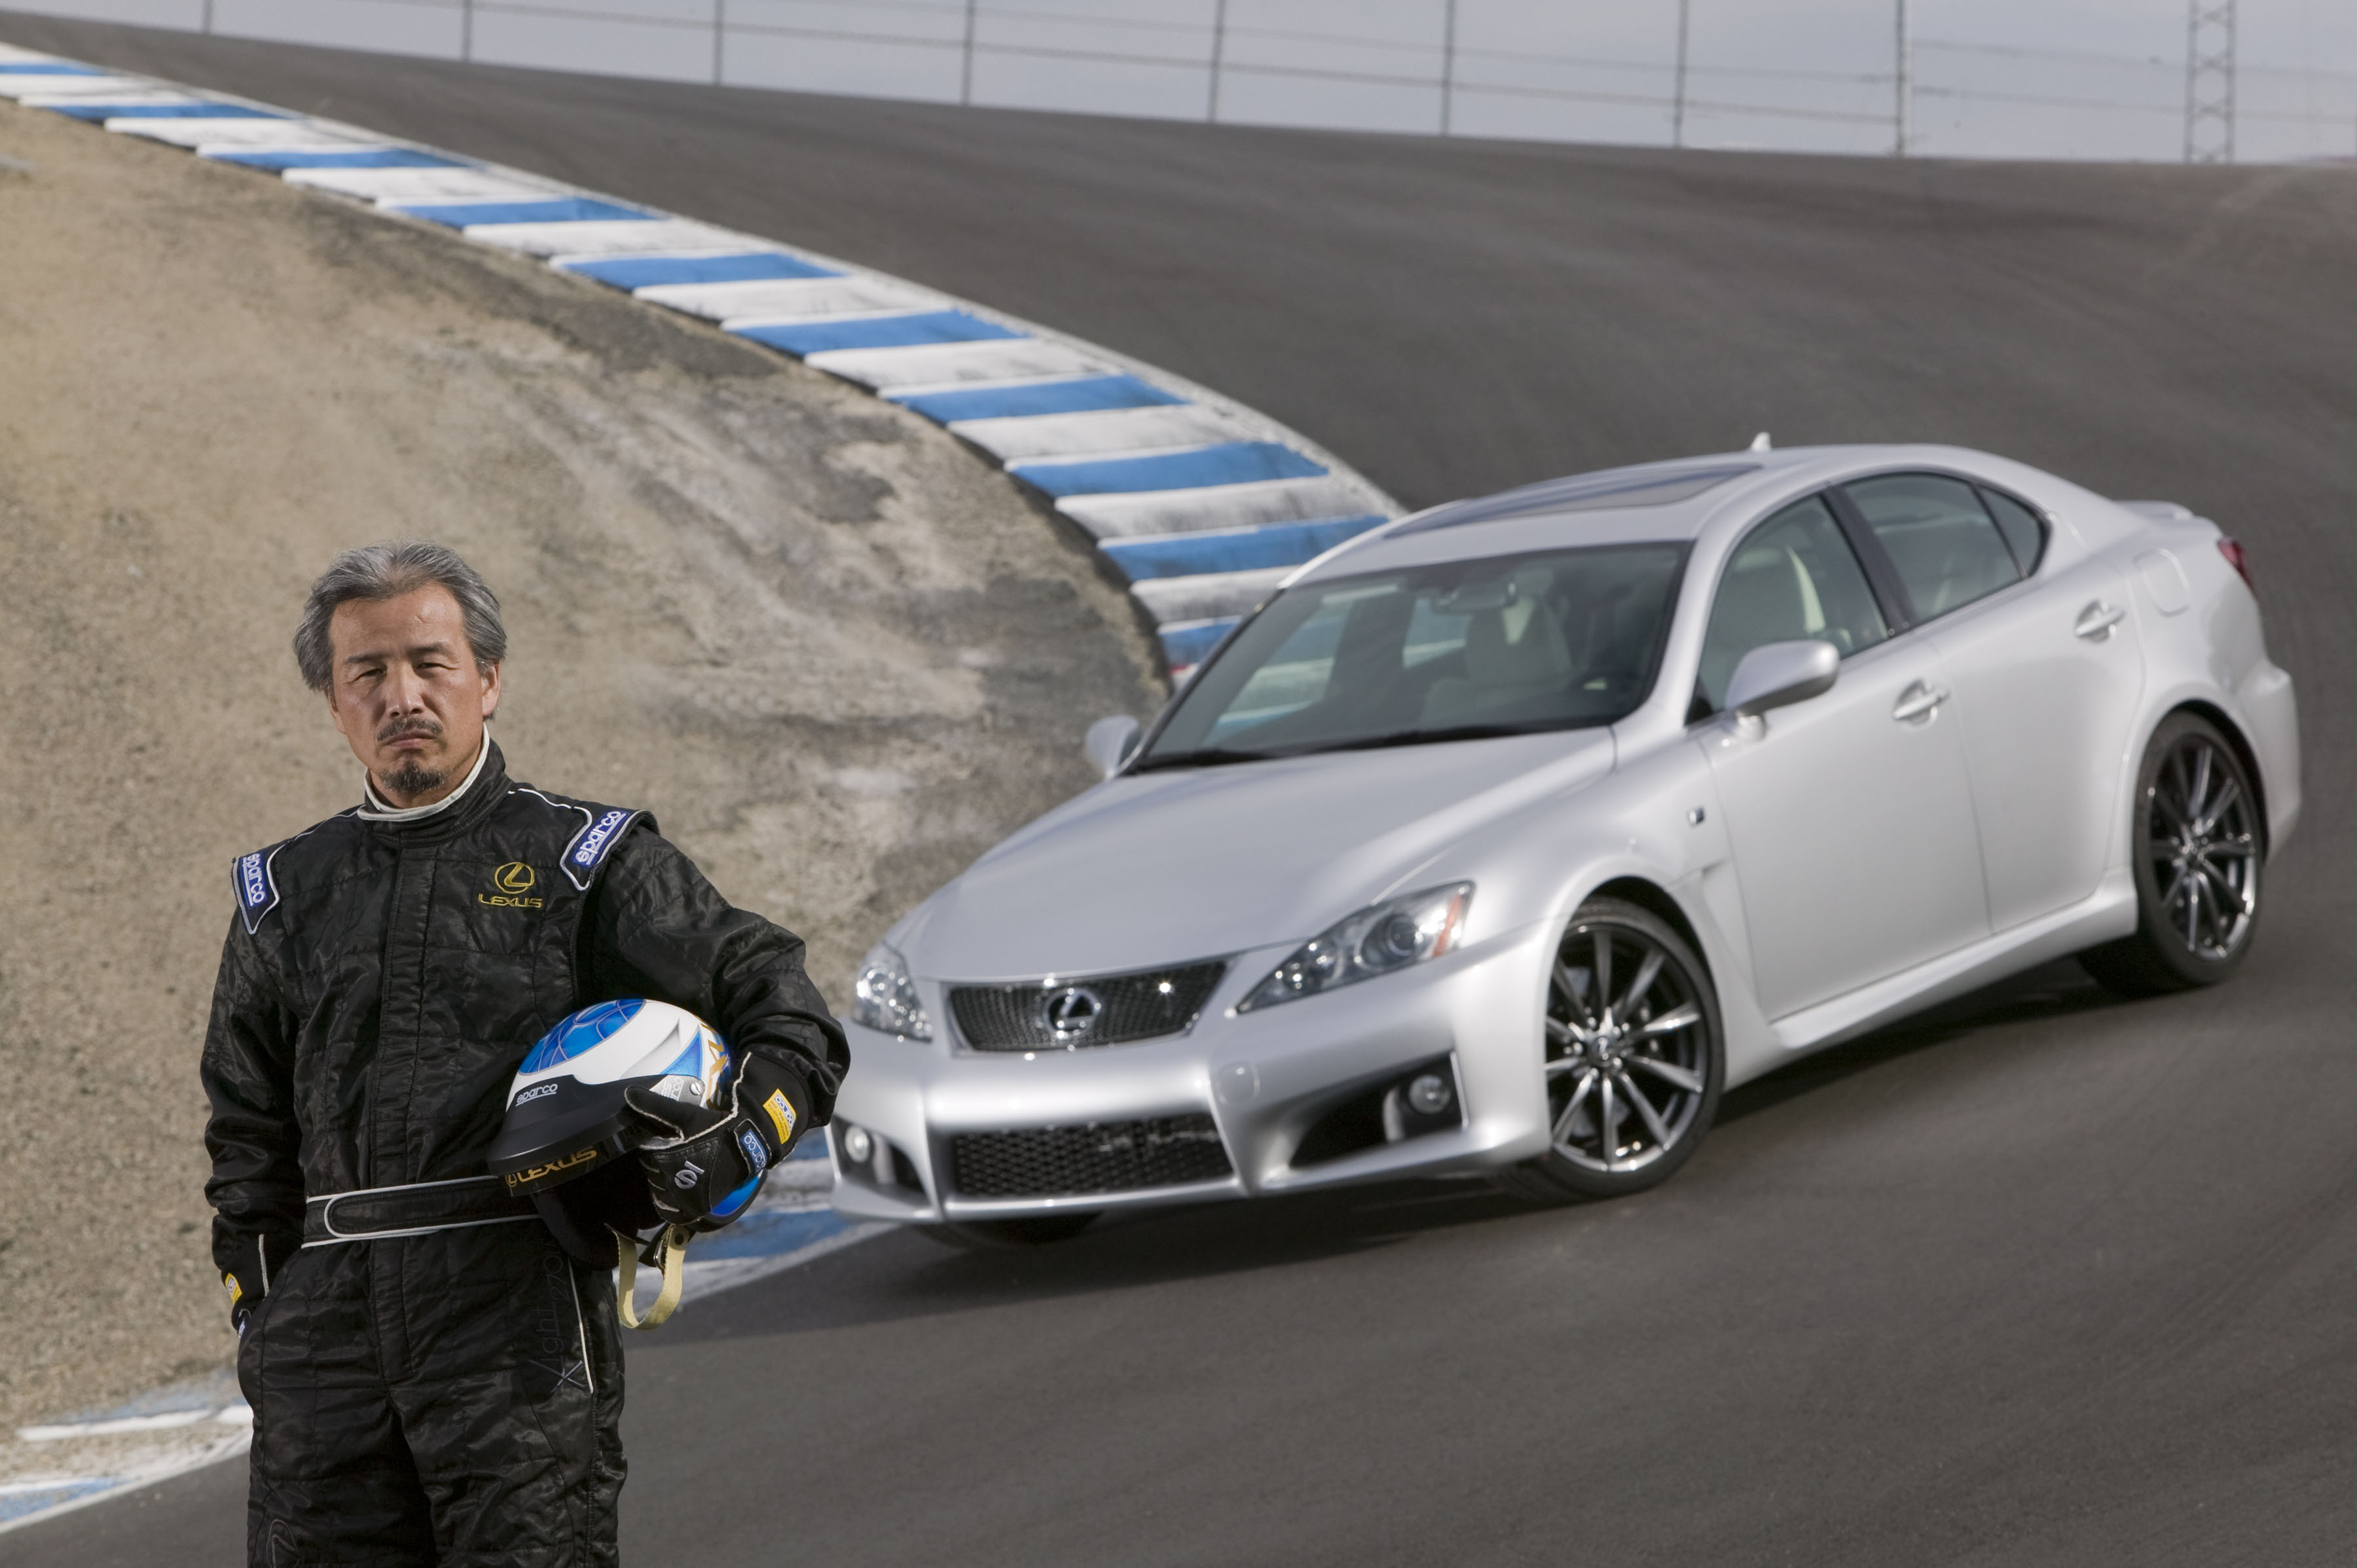 Confirmed: Former IS F Chief Engineer is head of RC F